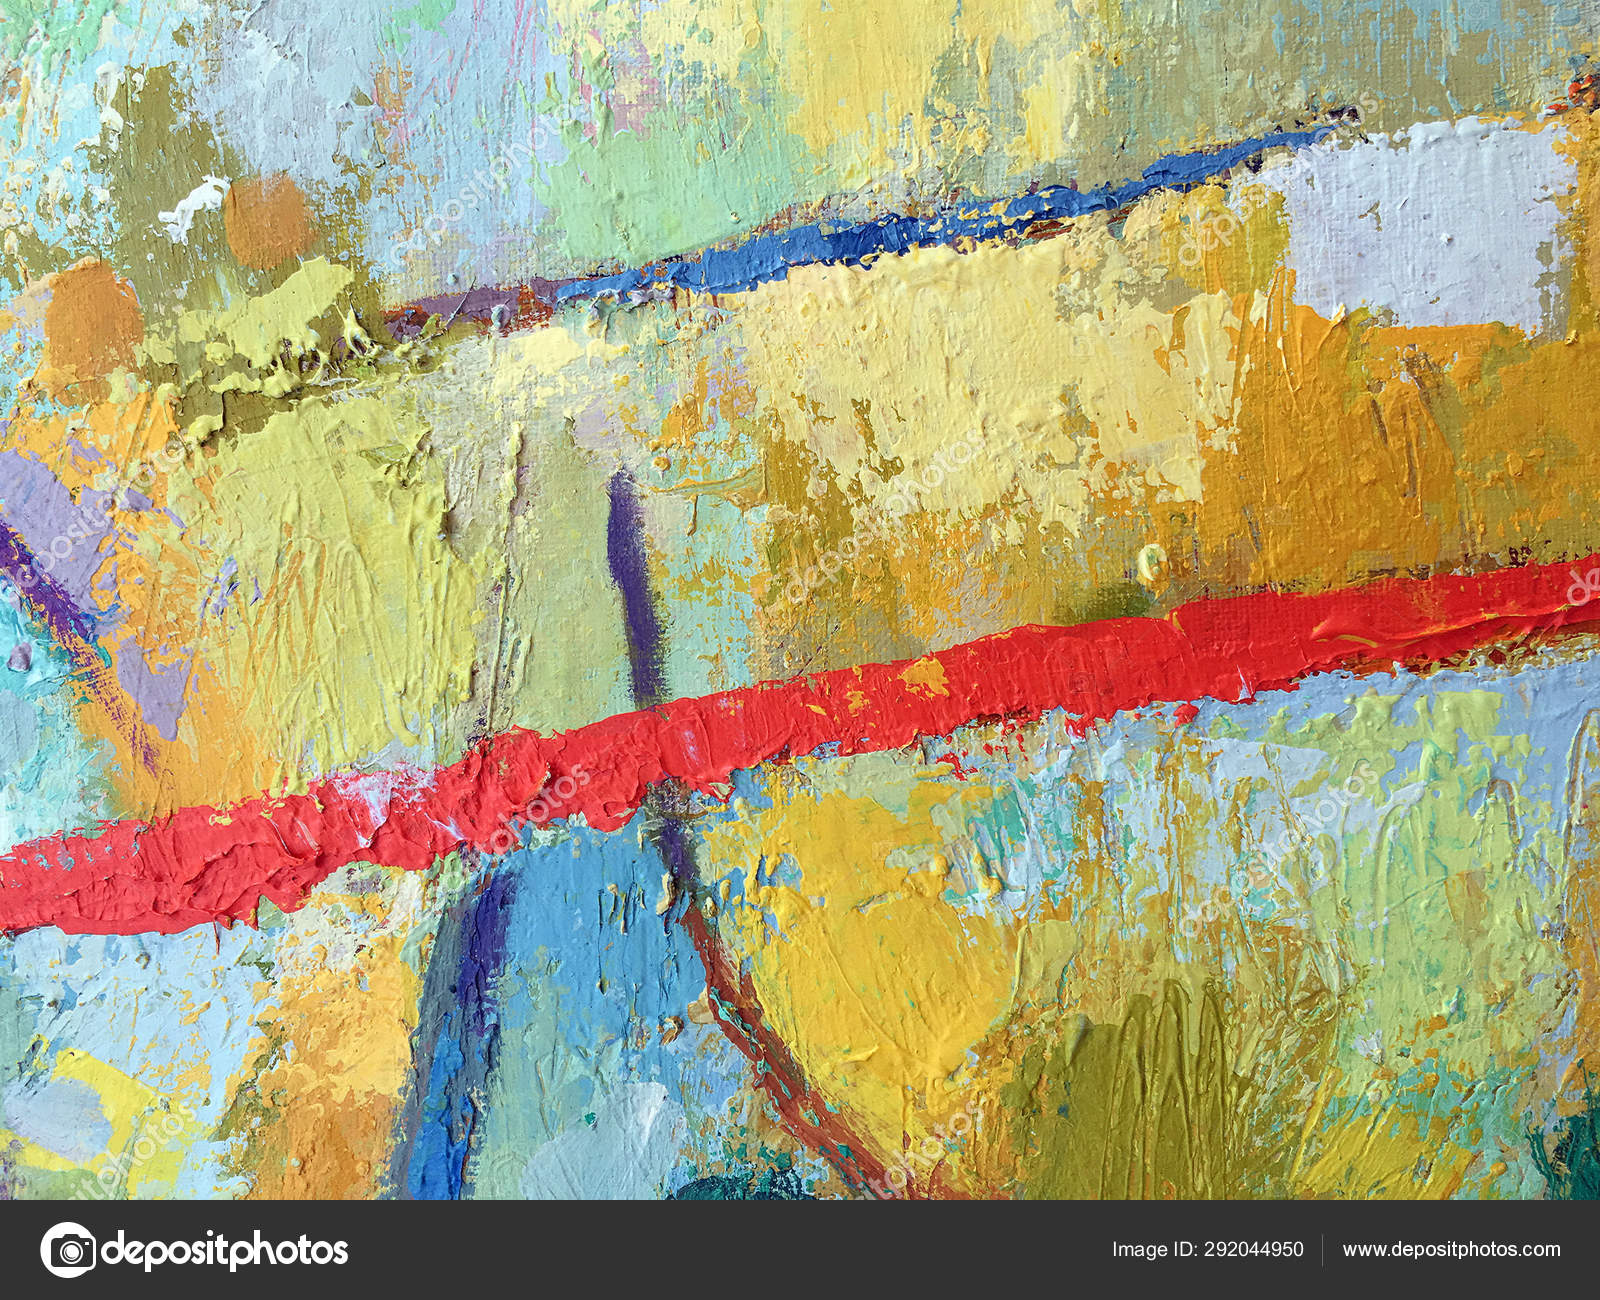 Vivid Abstract Minimalistic Painting Background Mixed Paint